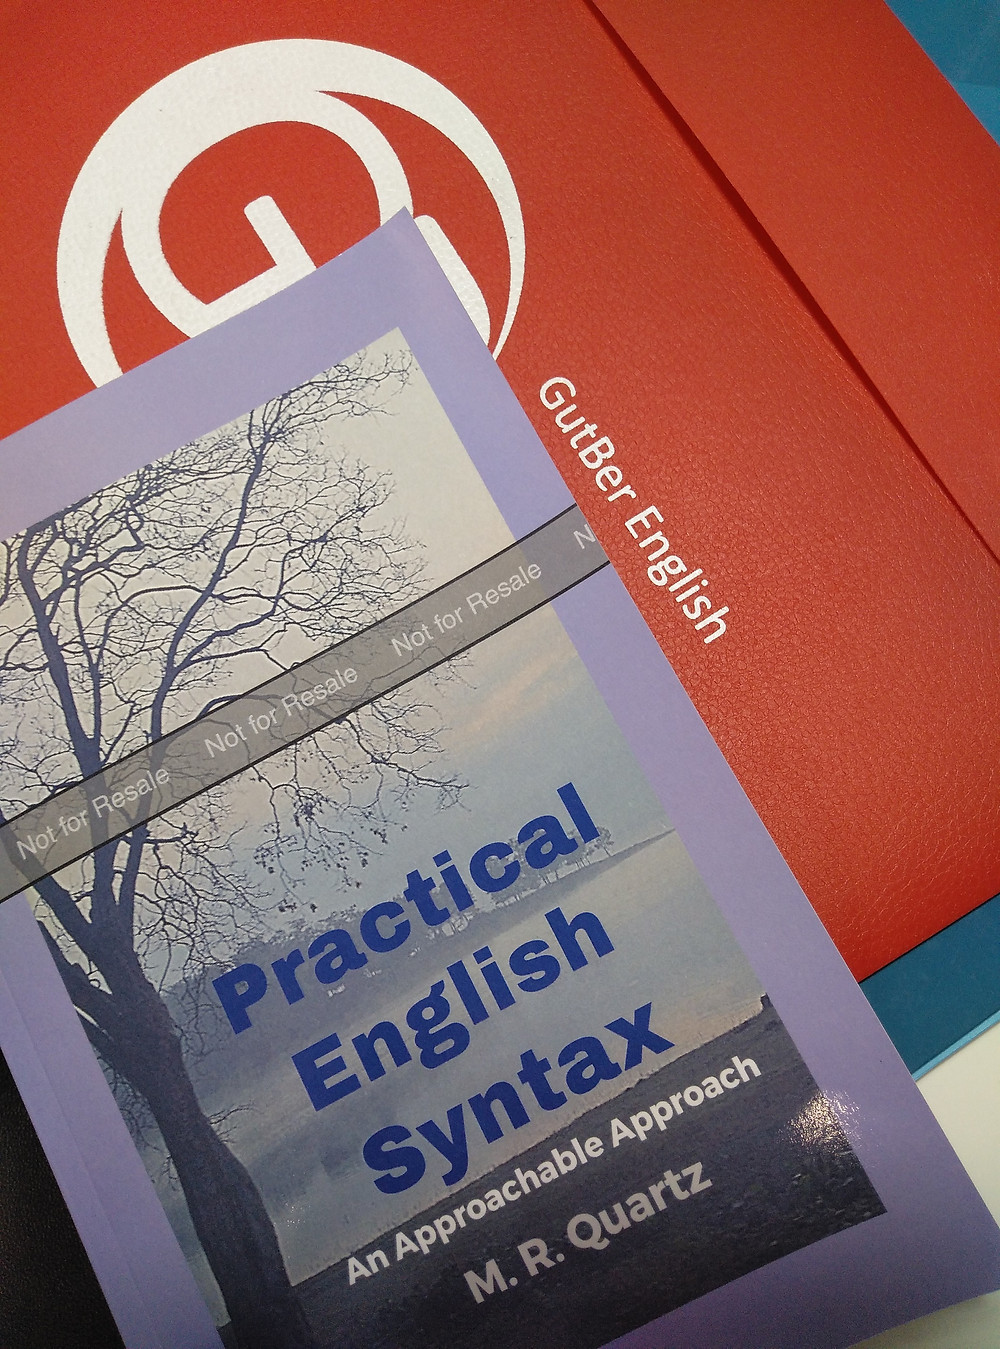 Practical English Syntax - M.R.Quartz - GutBer English - UNED Sintaxis Inglesa